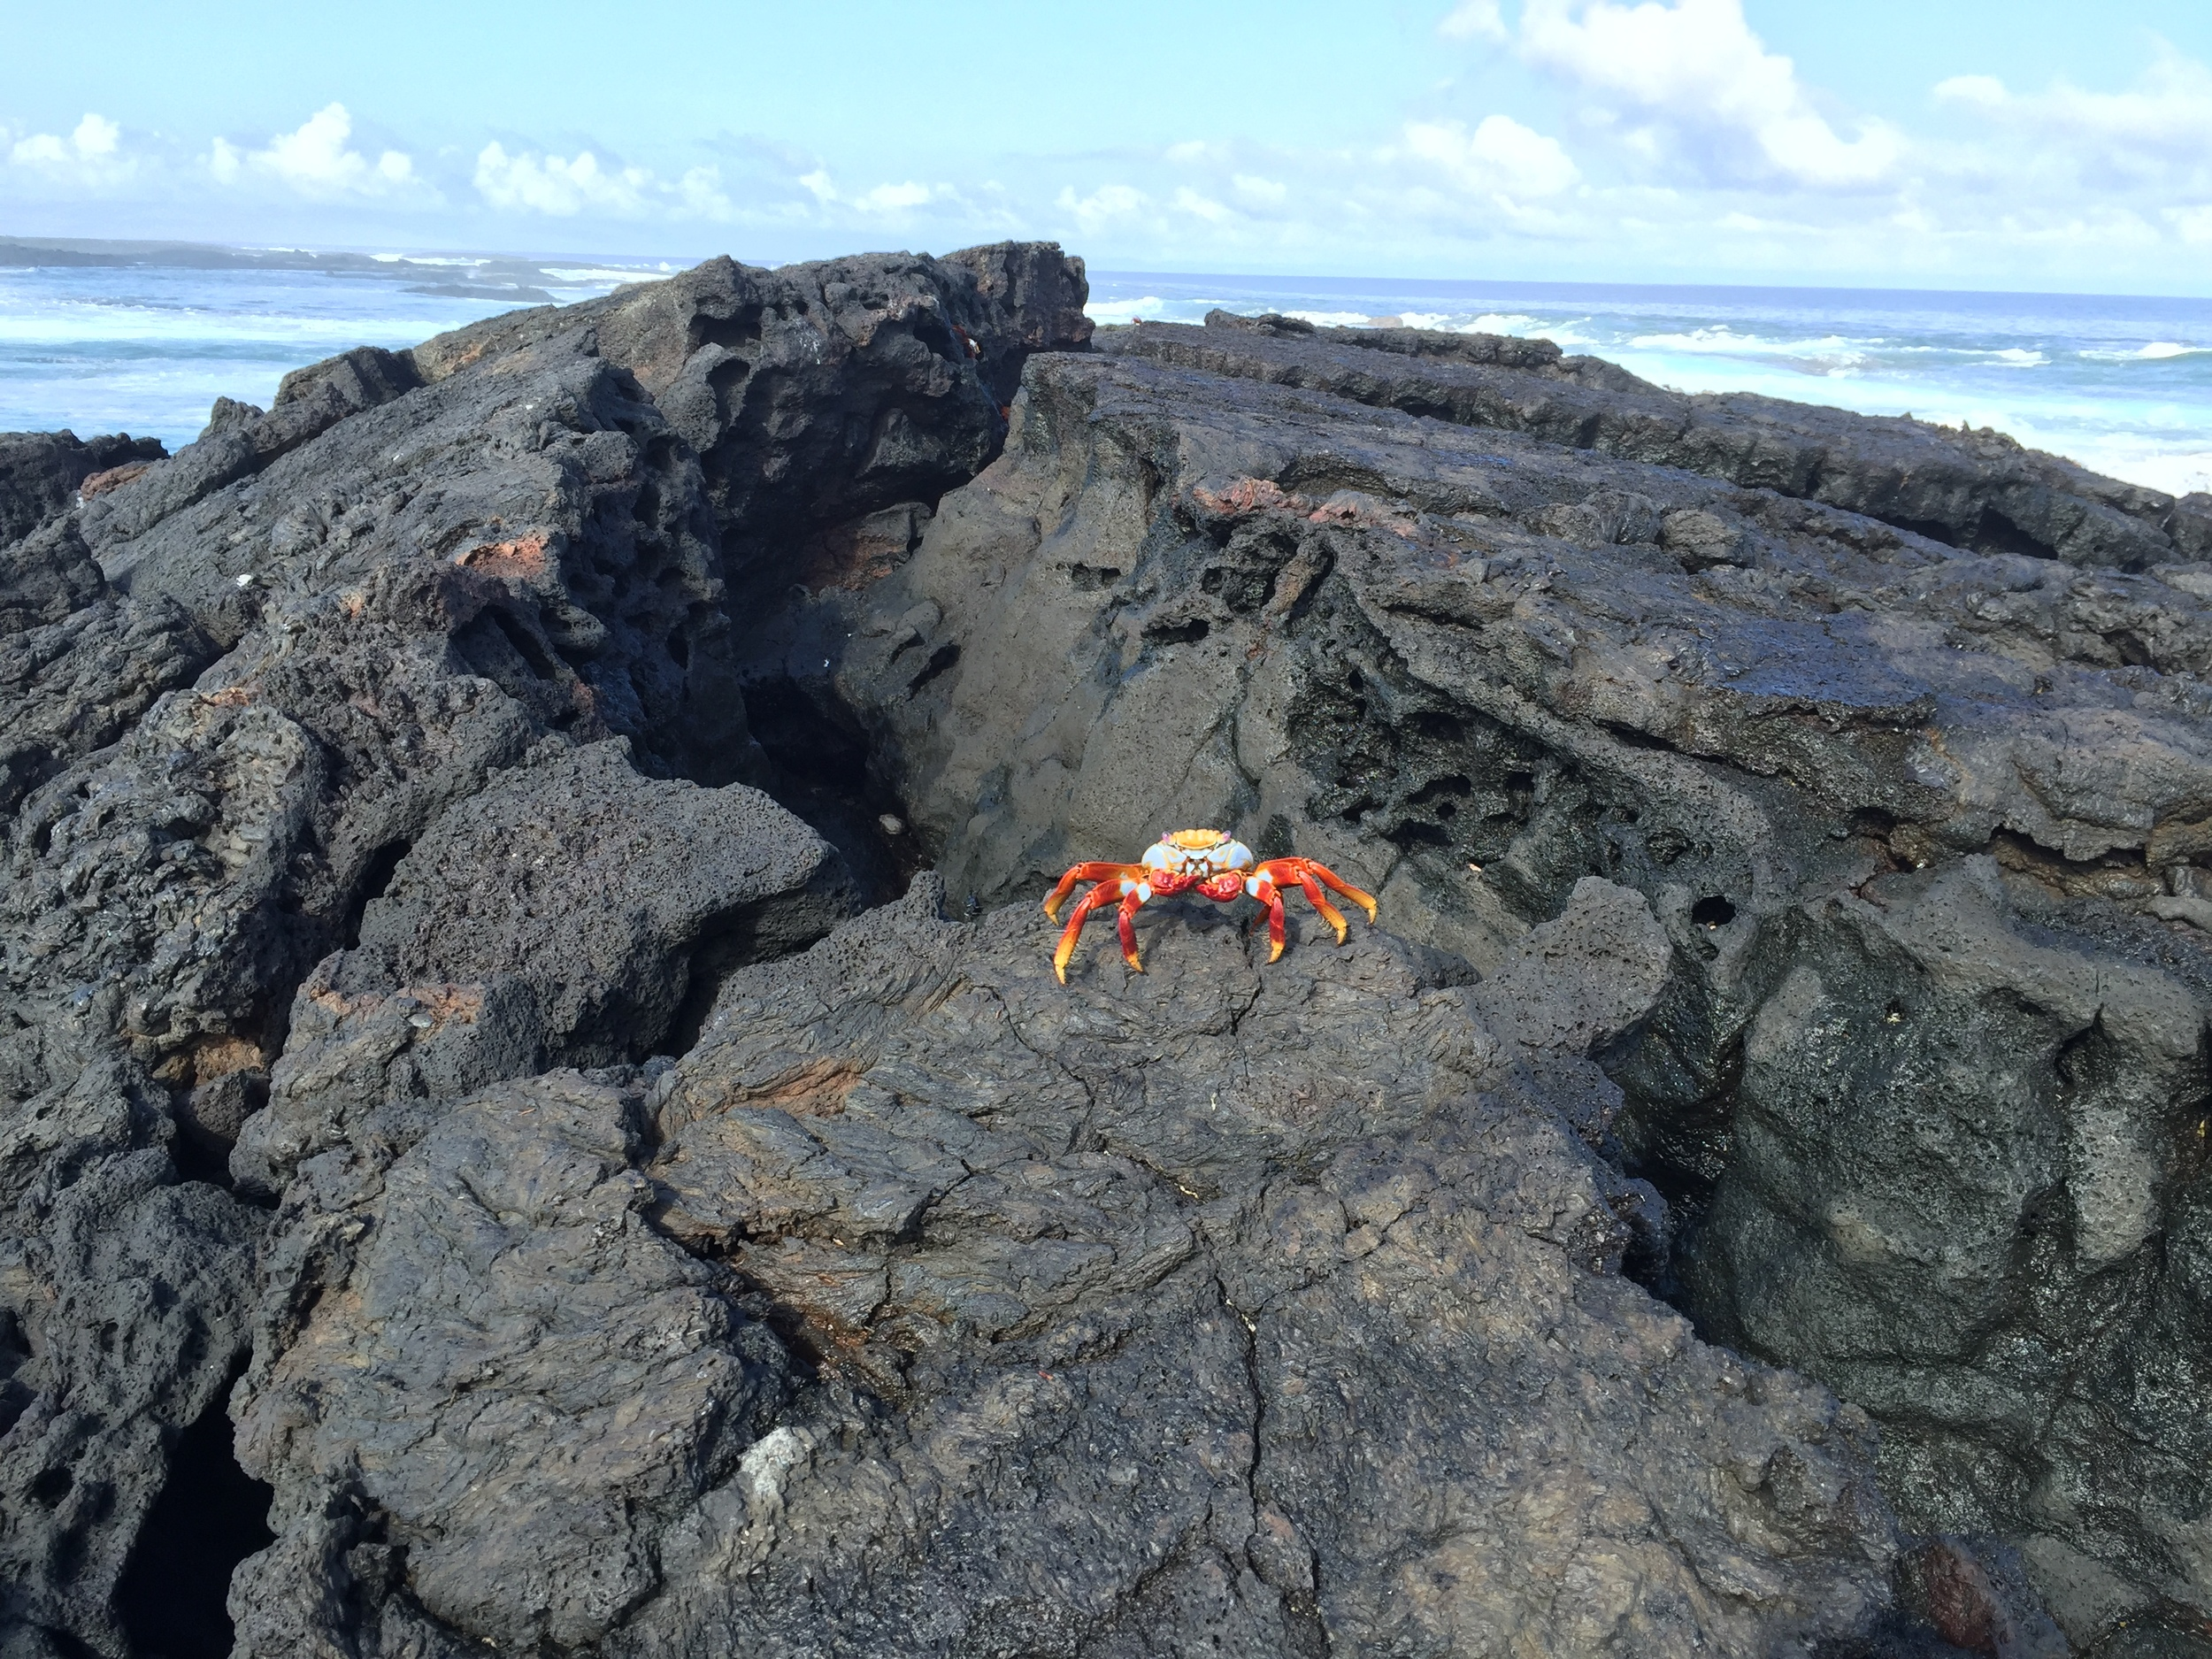 A colorful Sally Lightfoot crab perches on a black volcanic rock on the beach at Isla Santiago.